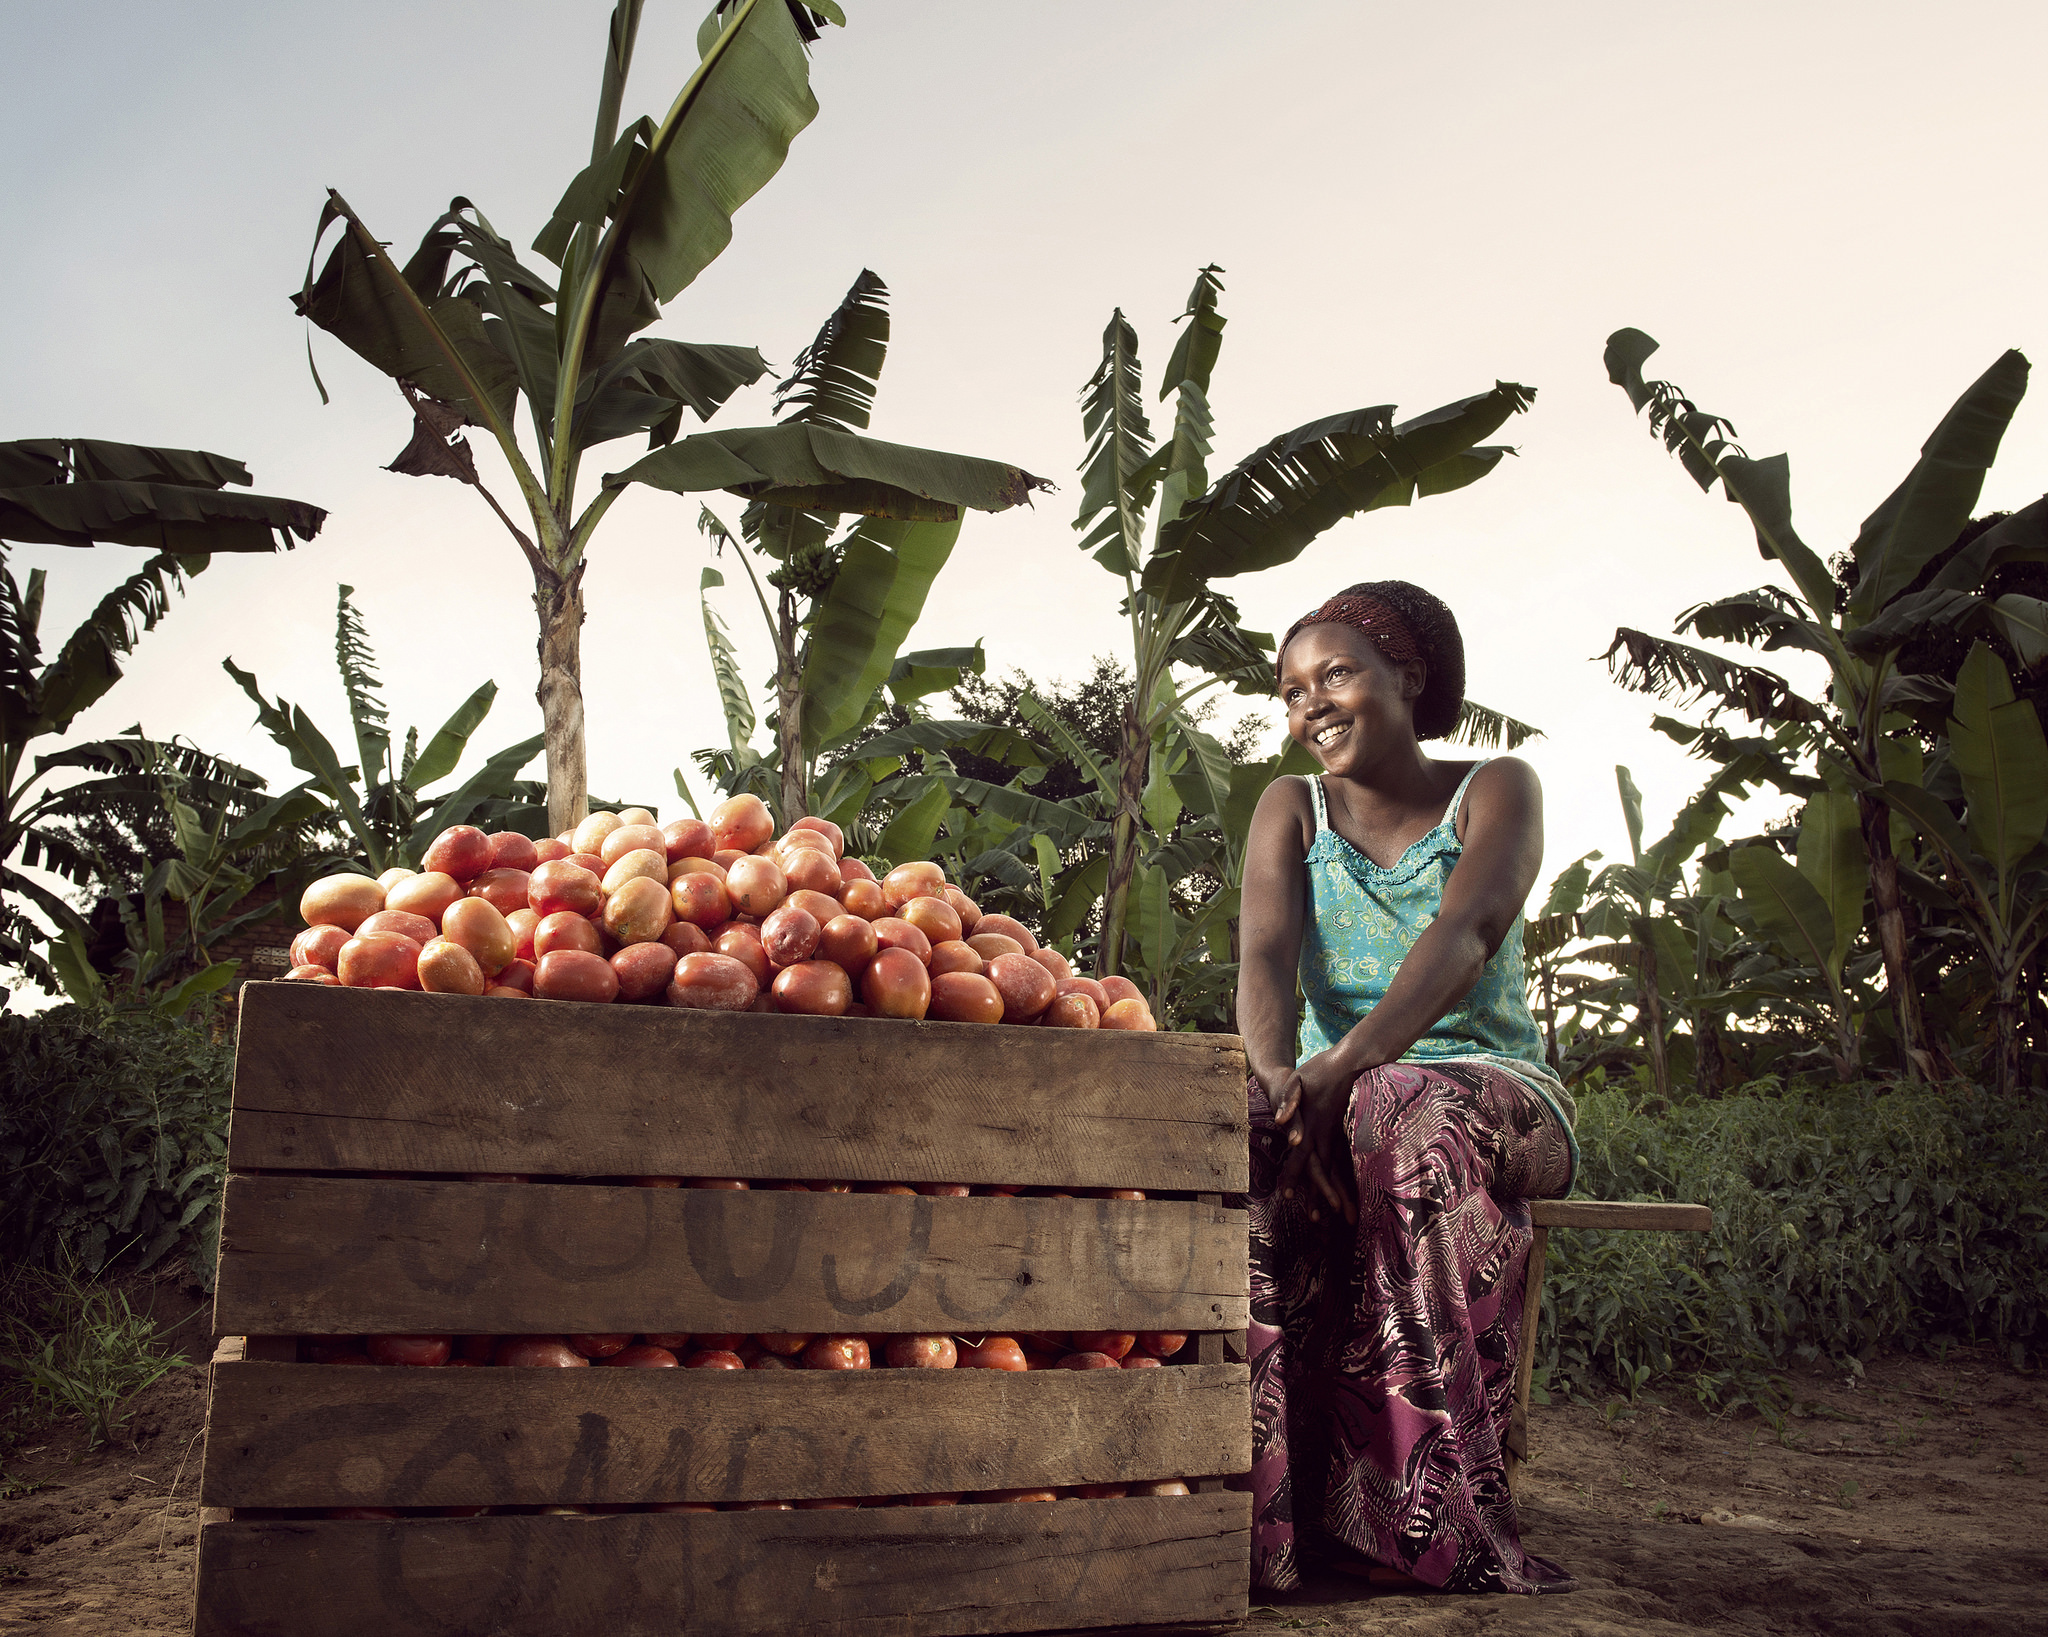 Olivia Nankindu, 27, surveys the fruits of her labor in the waning afternoon sunlight on her farm near Kyotera, Uganda.